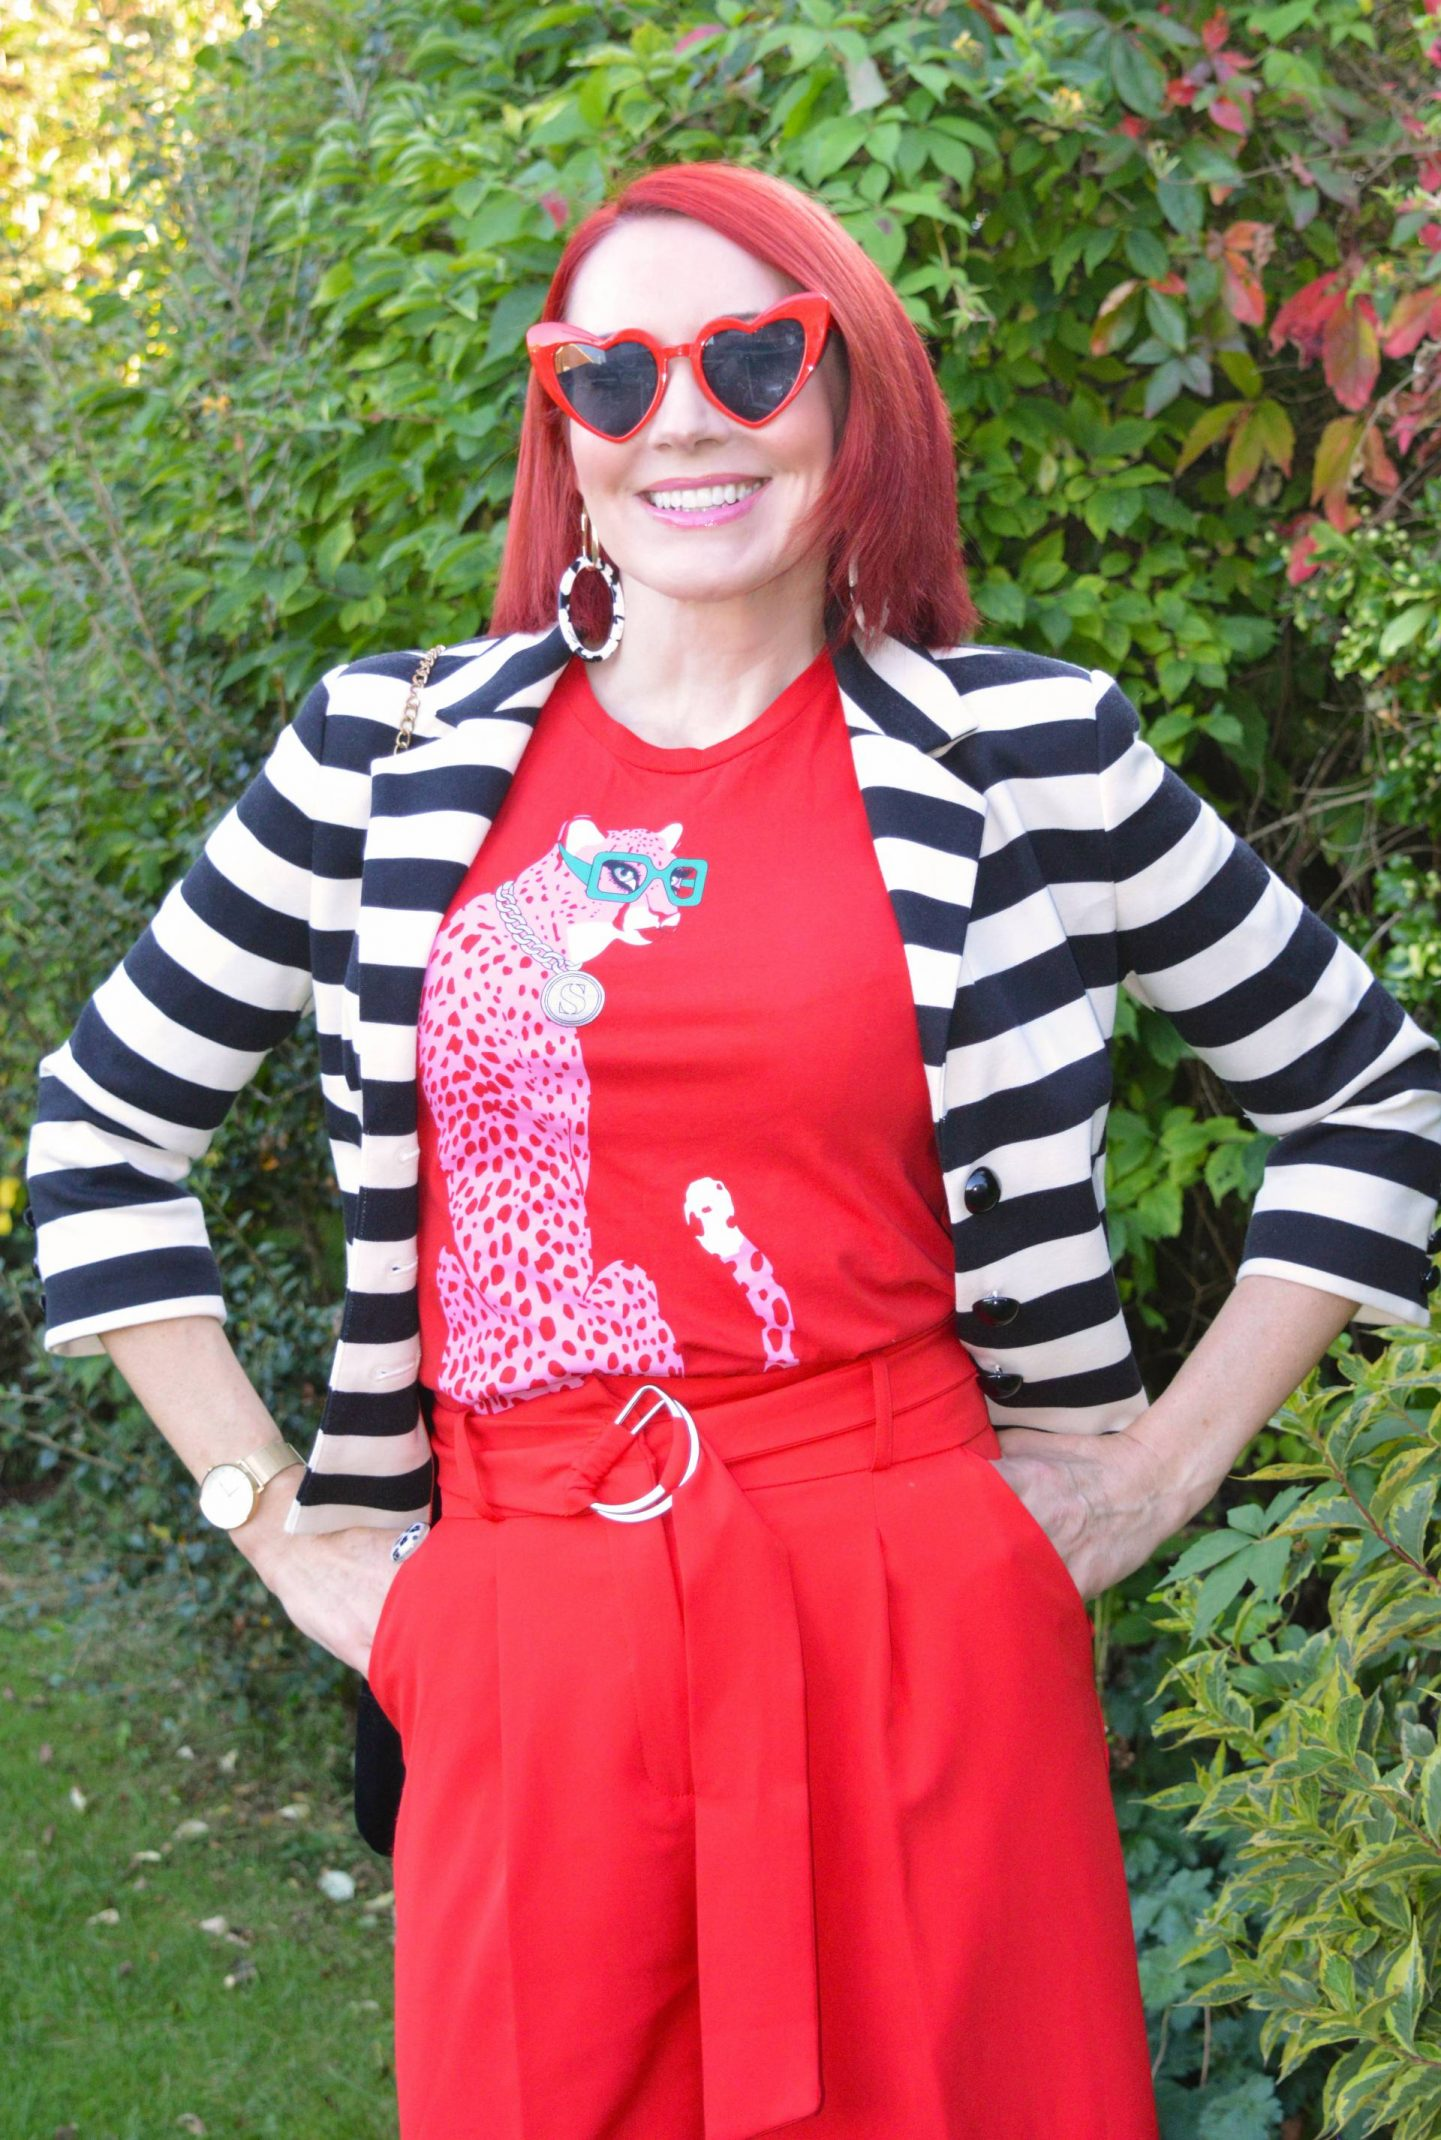 Simply Stripes - September's Thrifty Six, Marks & Spencer black and white striped jacket, Asos red culottes, Soul Sisters red cheetah T-shirt, red heart sunglasses